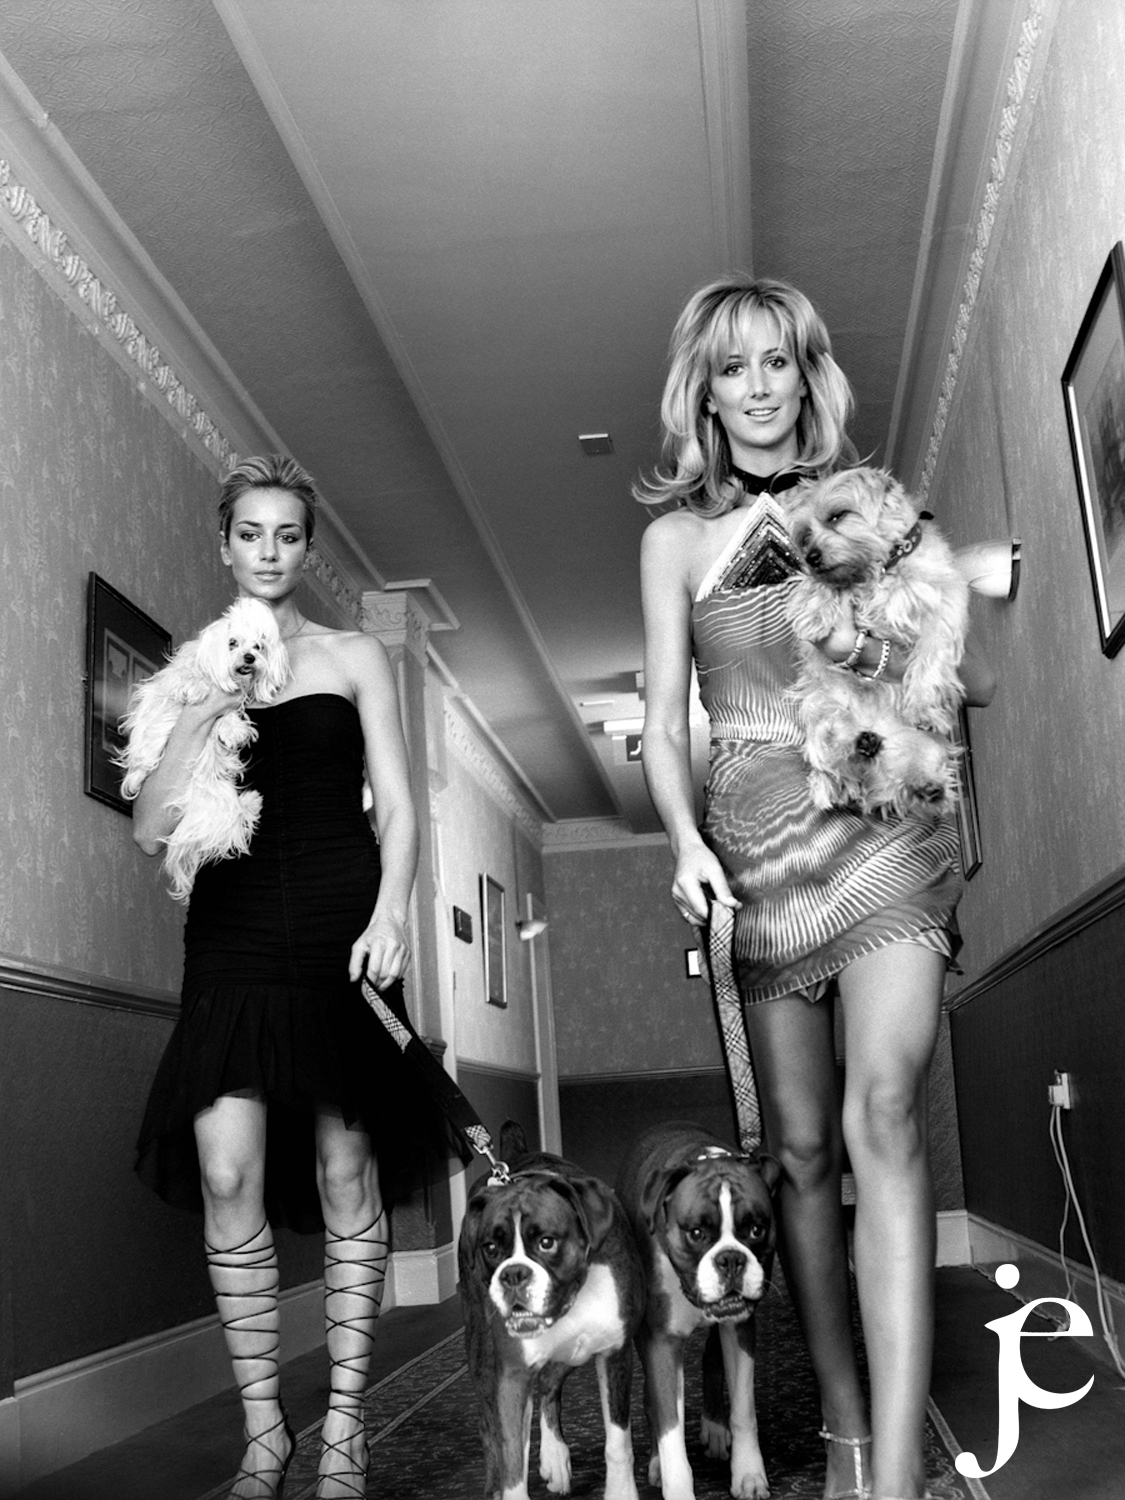 Socialities Lady Isabella and Victoria Hervey and their dogs at the Hotel Russel, London 1992